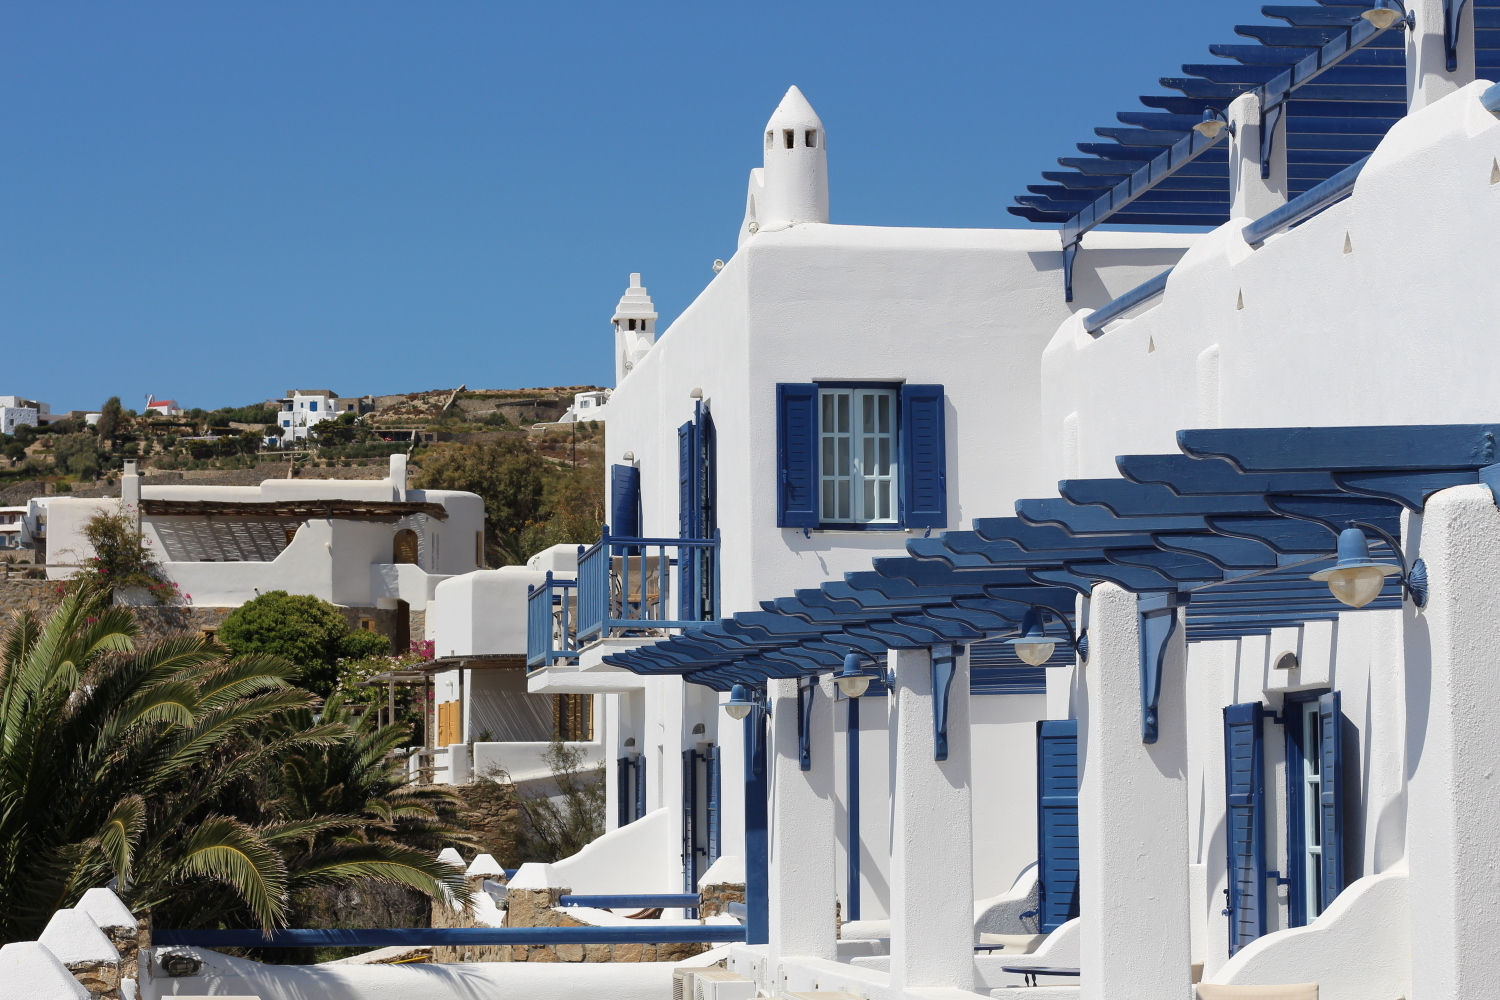 San Marco Luxury Hotel & Villas in Mykonos